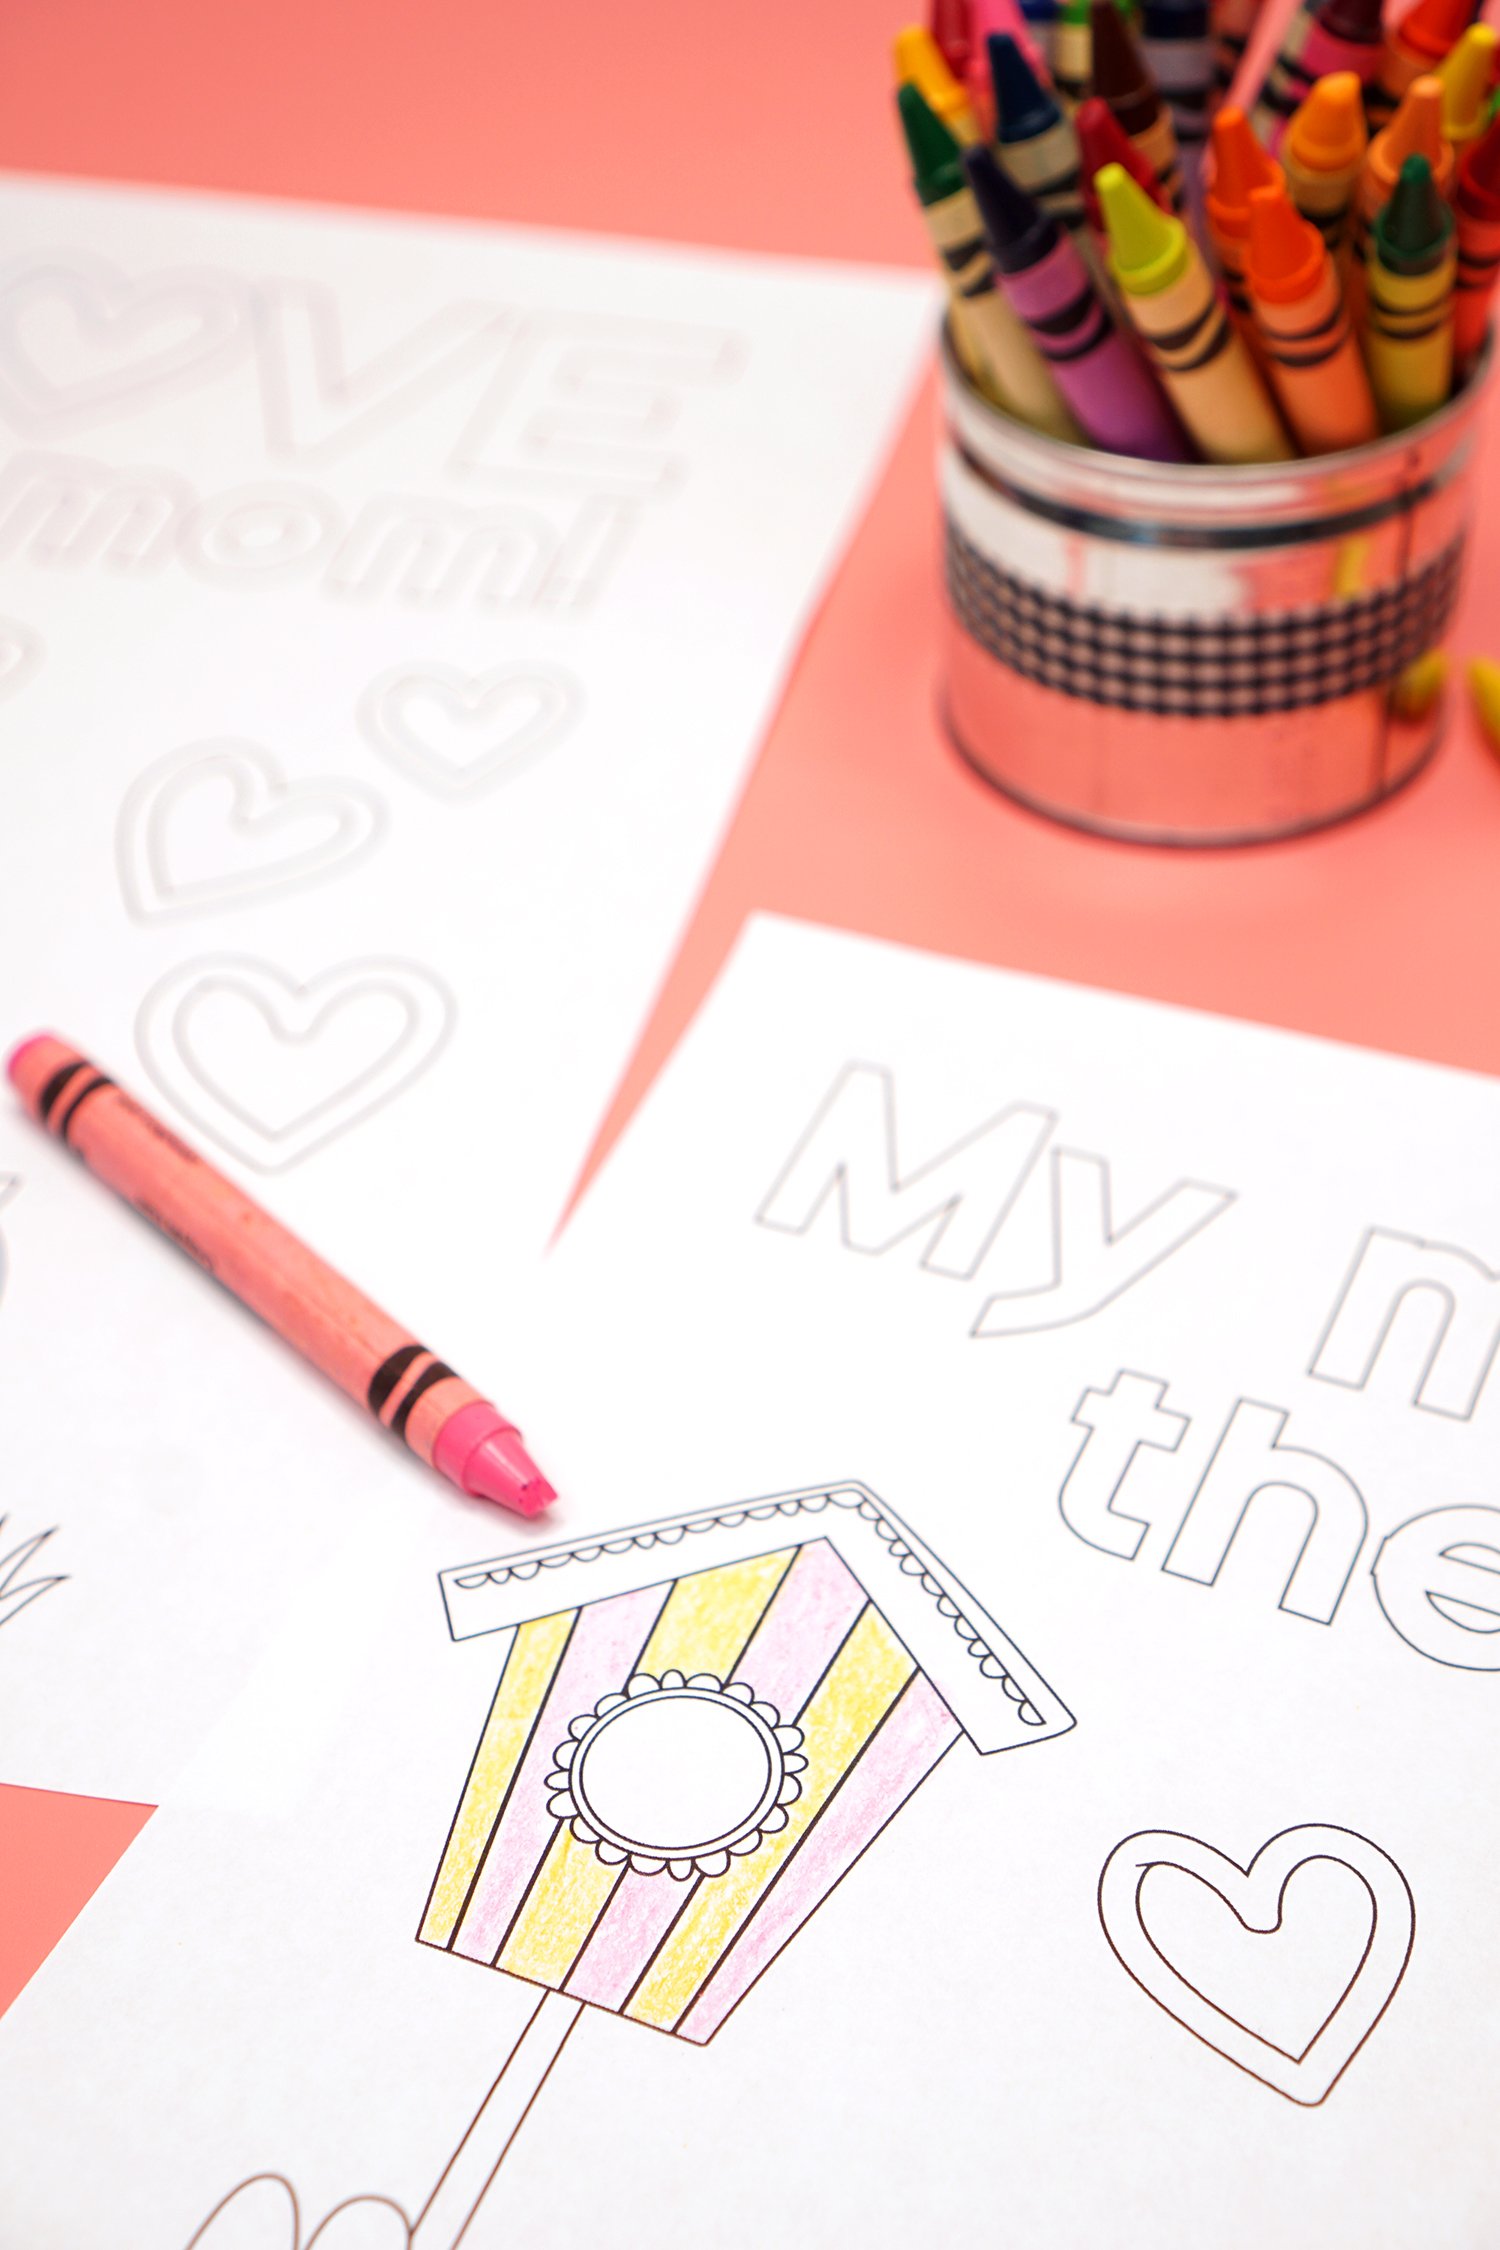 Birdhouse Mother's Day Coloring Page with Crayons